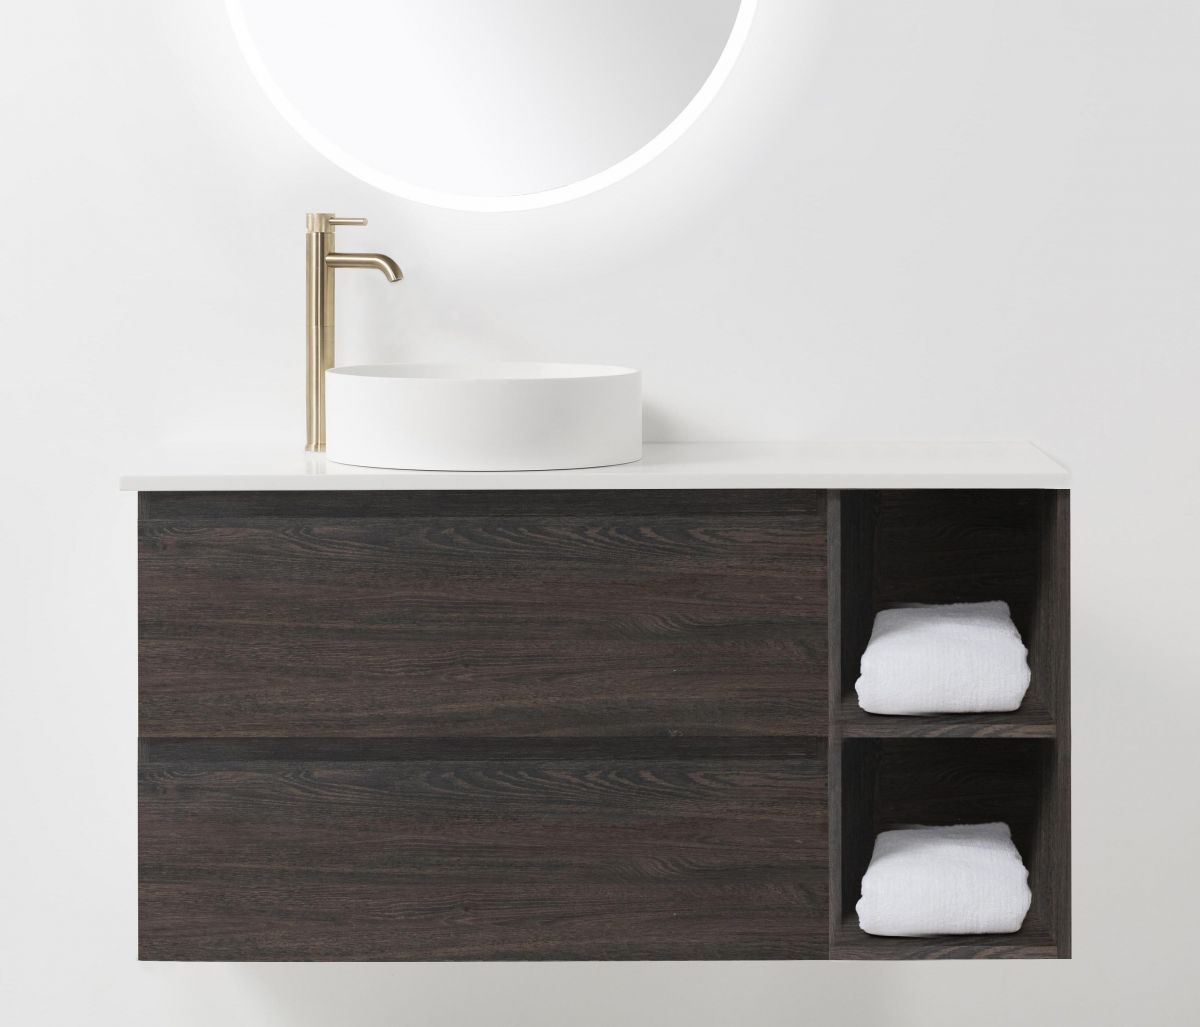 Soft Solid-Surface 1200, 2 Drawer Wall-Hung Vanity + 300 Open Shelf Module